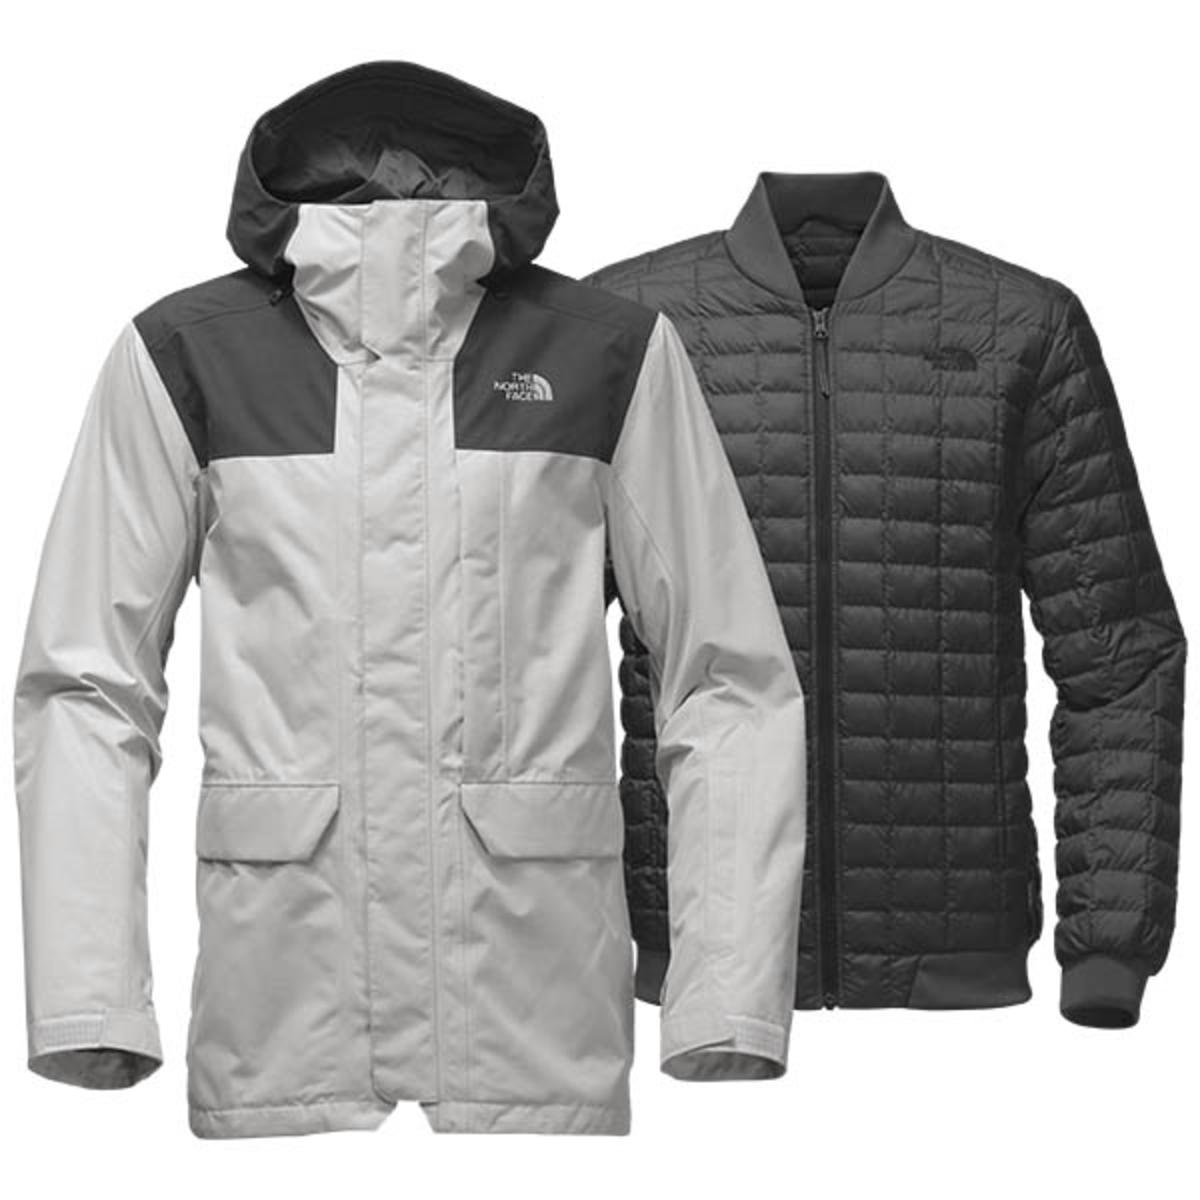 Details about The North Face Men s Alligare Thermoball Triclimate Jacket XL db1659c9c6